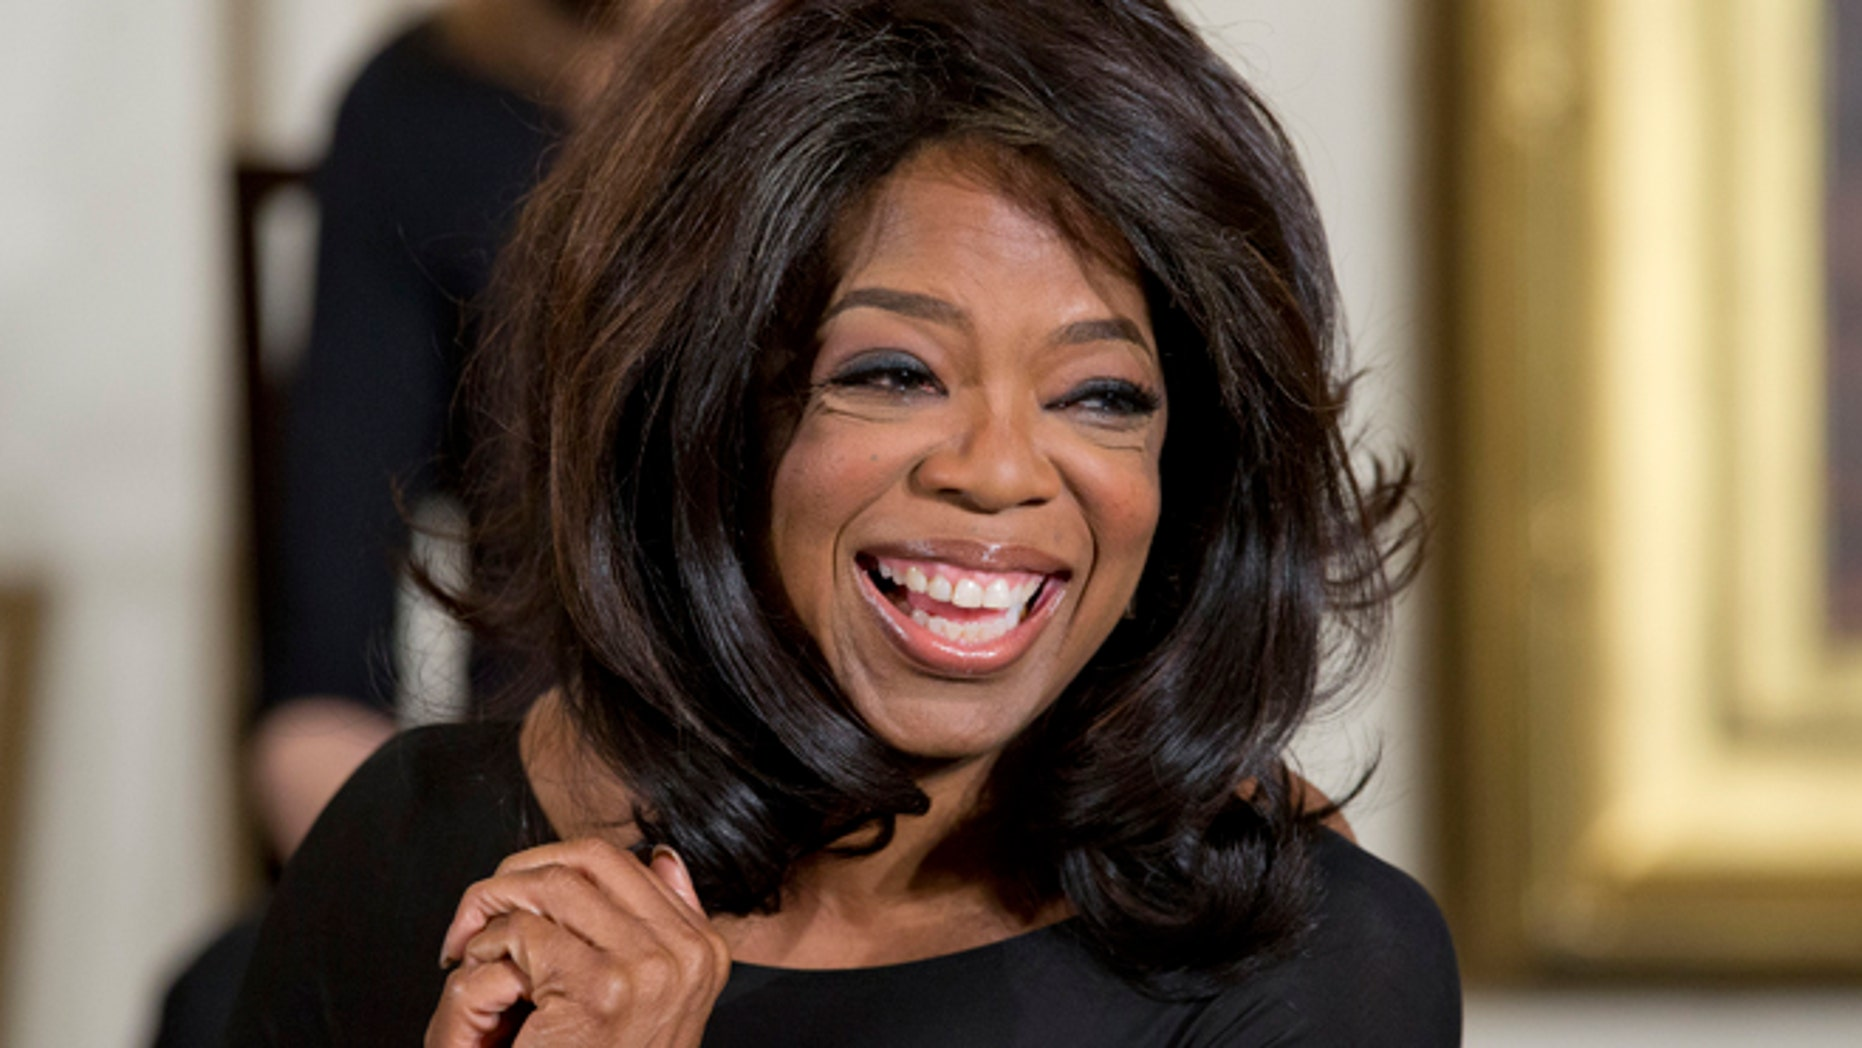 FILE: A man who lives near Oprah Winfrey's new property above Telluride, Colorado, is suing her for allegedly blocking access to hiking trails open to neighbors for decades.